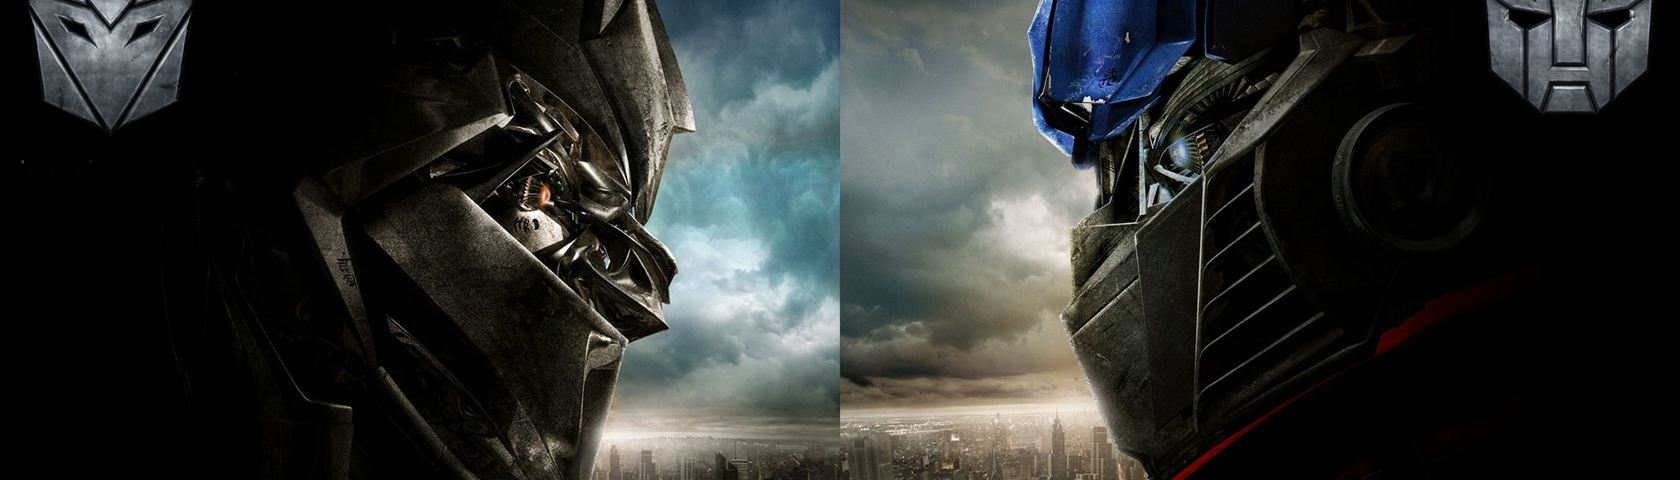 Optimus Prime vs. Megatron